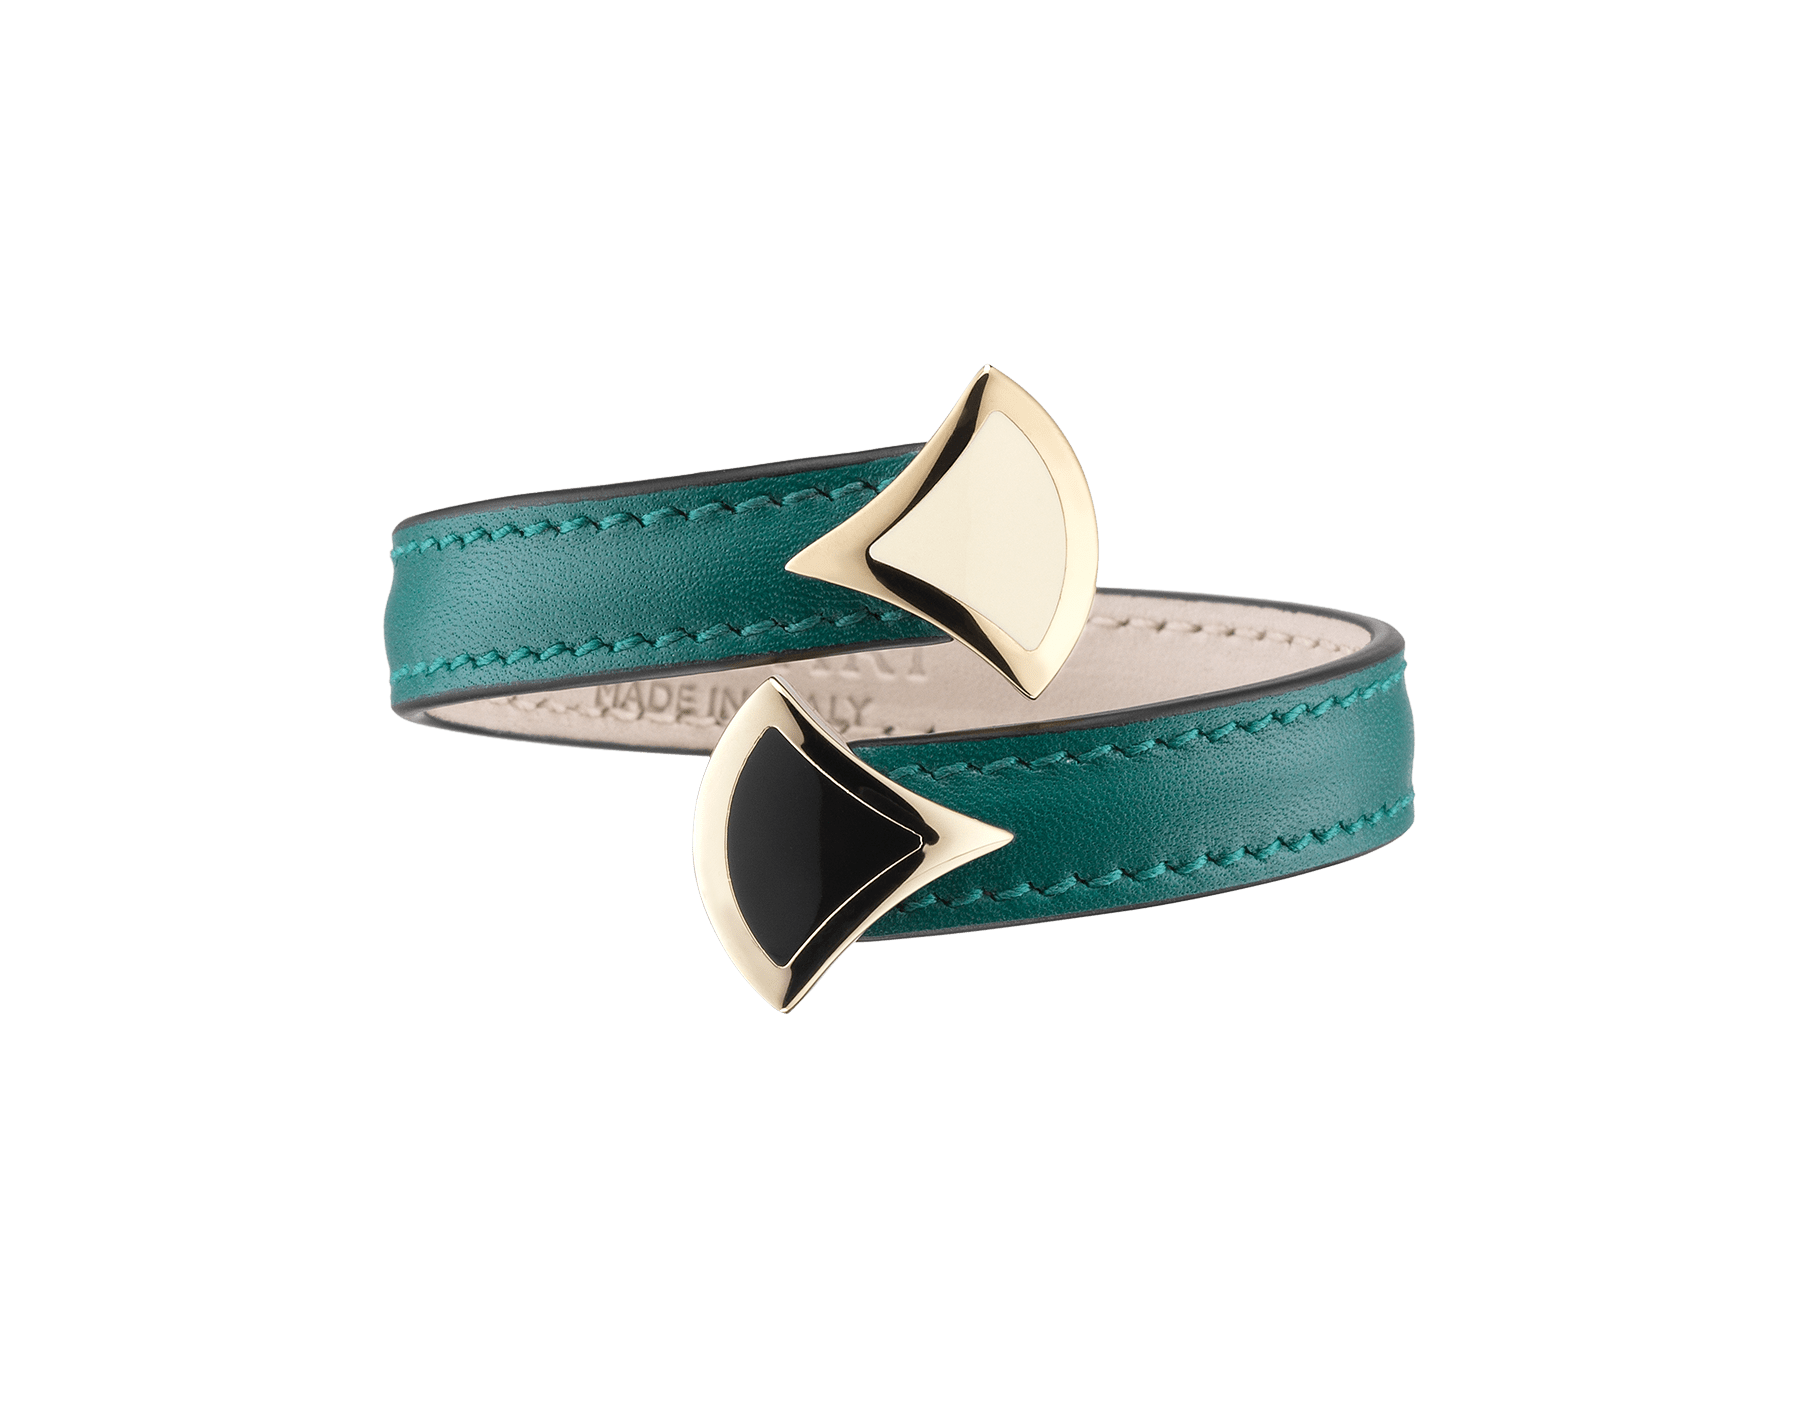 DIVAS' DREAM soft bangle bracelet in emerald green smooth calf leather, with brass light gold plated DIVAS' DREAM motif in black and white enamel 287510 image 1